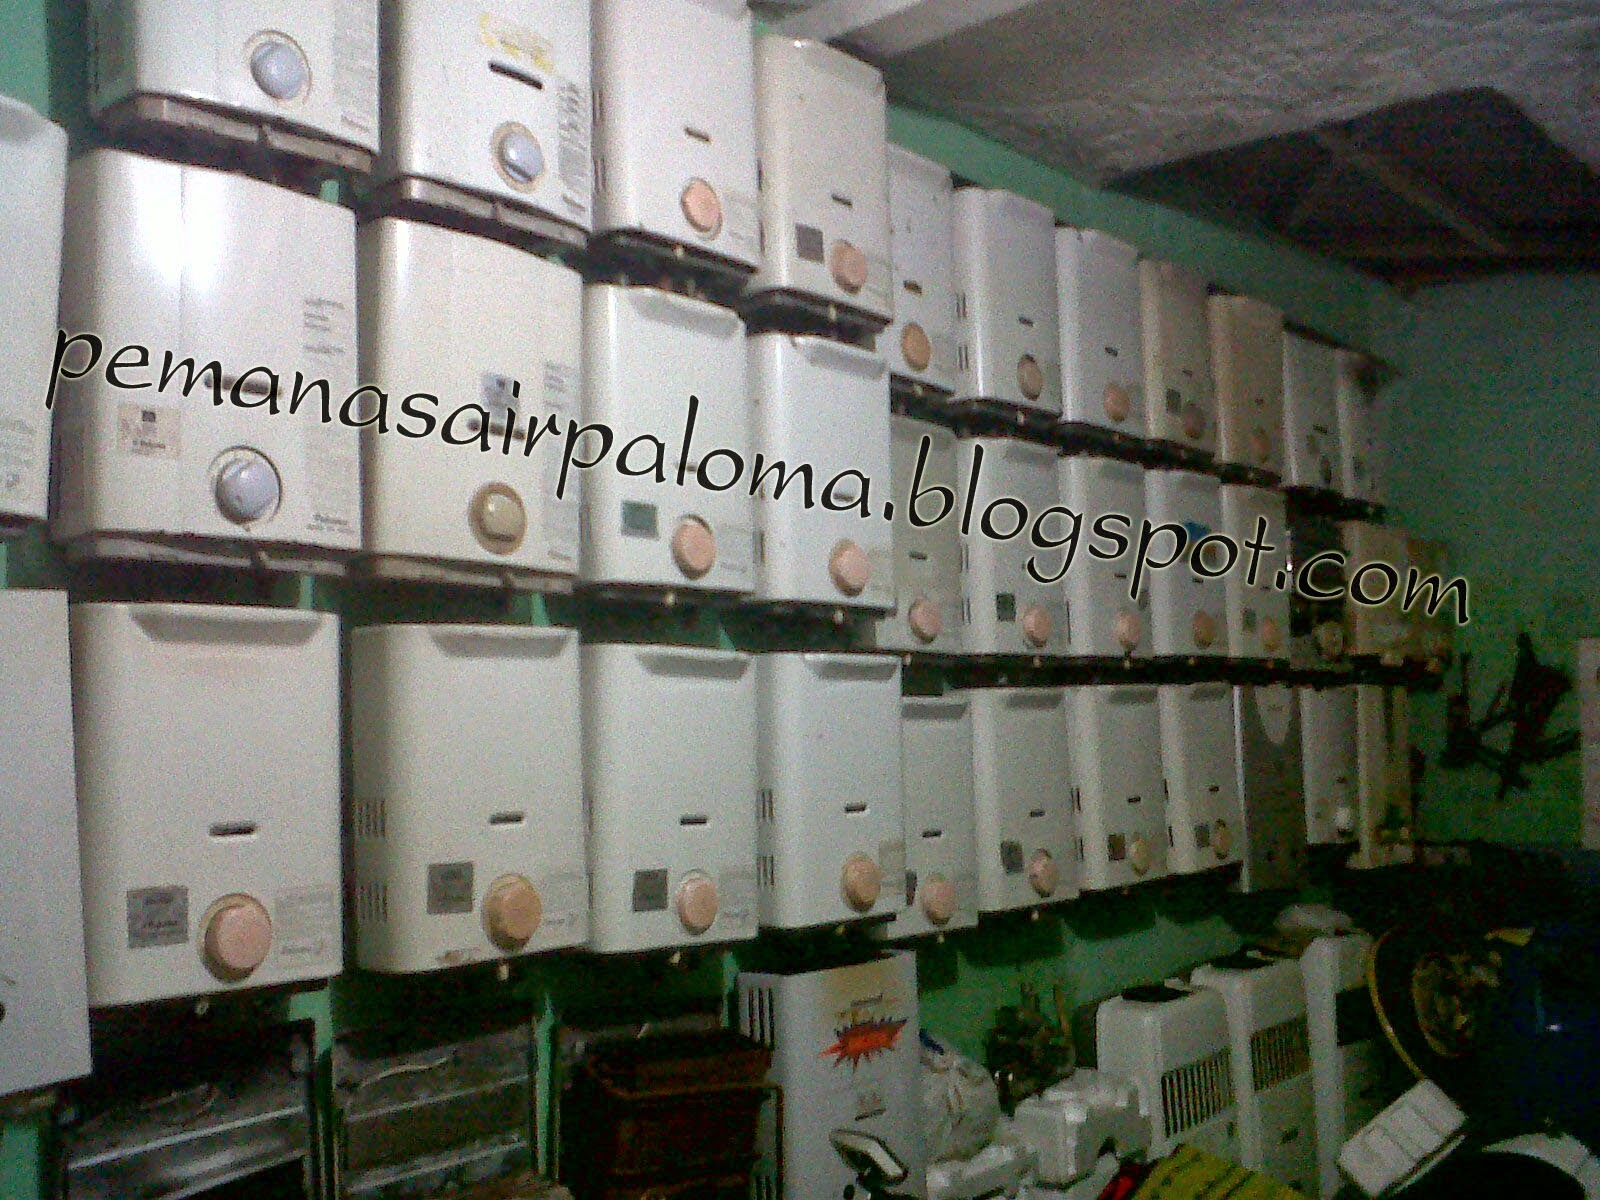 Jual Pemanas Air murah Rinnai Paloma Modena Wasser Gainsborough Ariston Panasonic